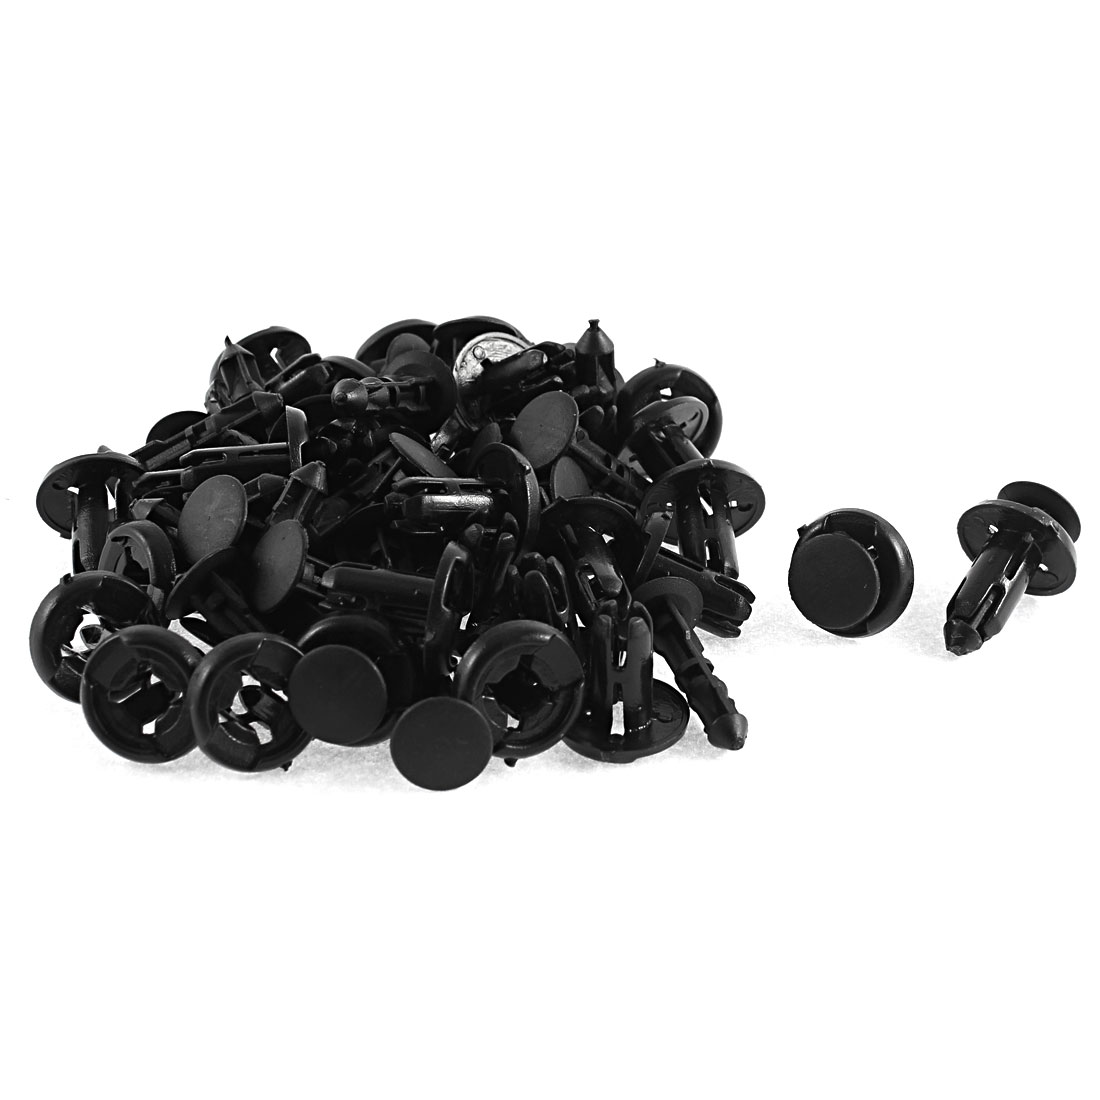 32Pcs Plastic Push-Type Bumper Retainer Clip 8 x 17 x 20mm for Toyota